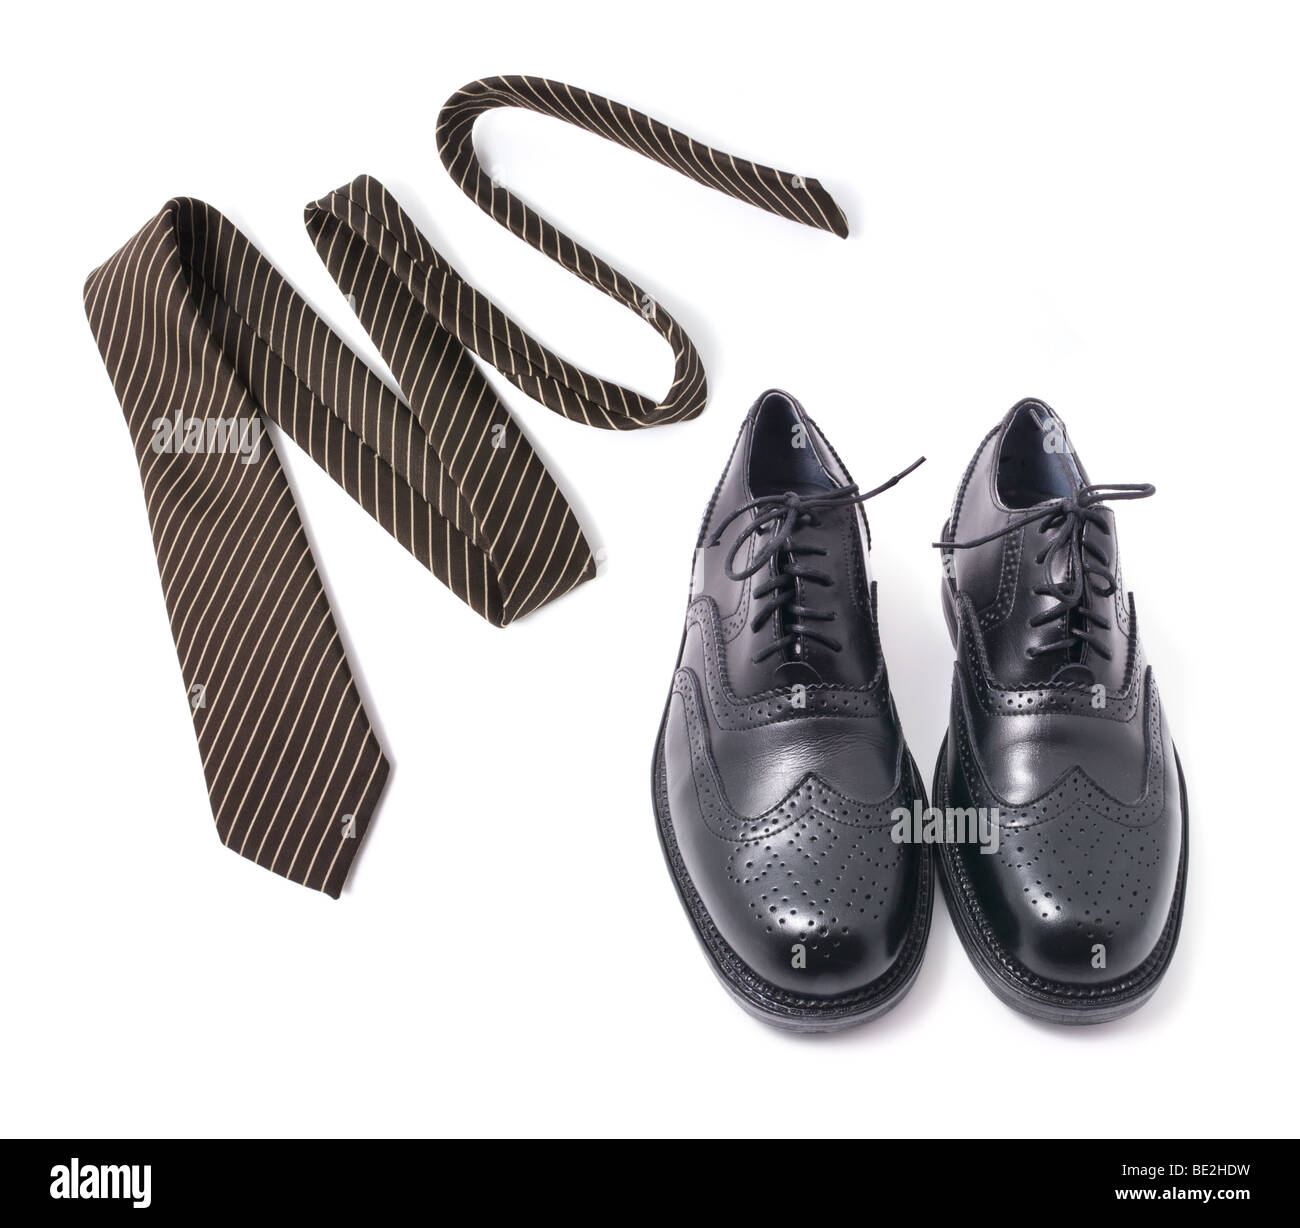 Necktie and Men Shoes - Stock Image